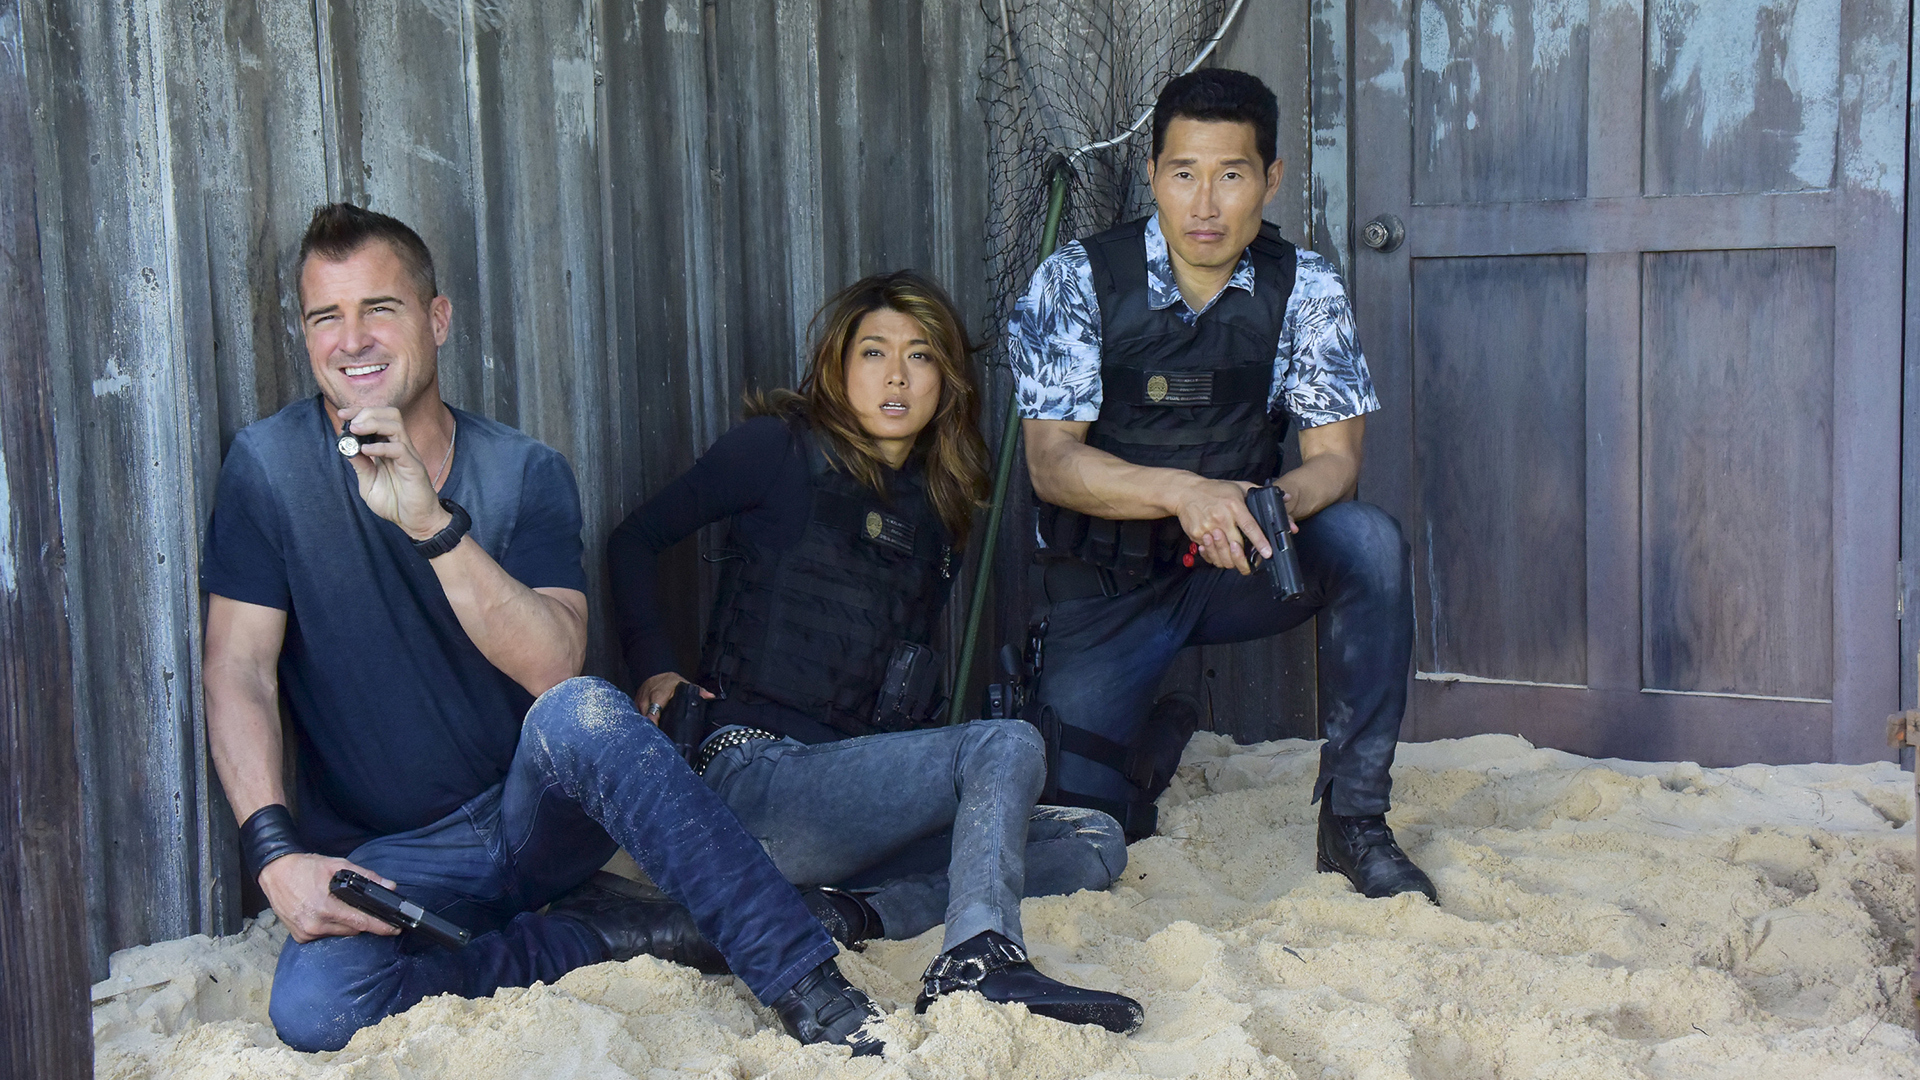 Jack, Kono, and Chin use a wall for cover.